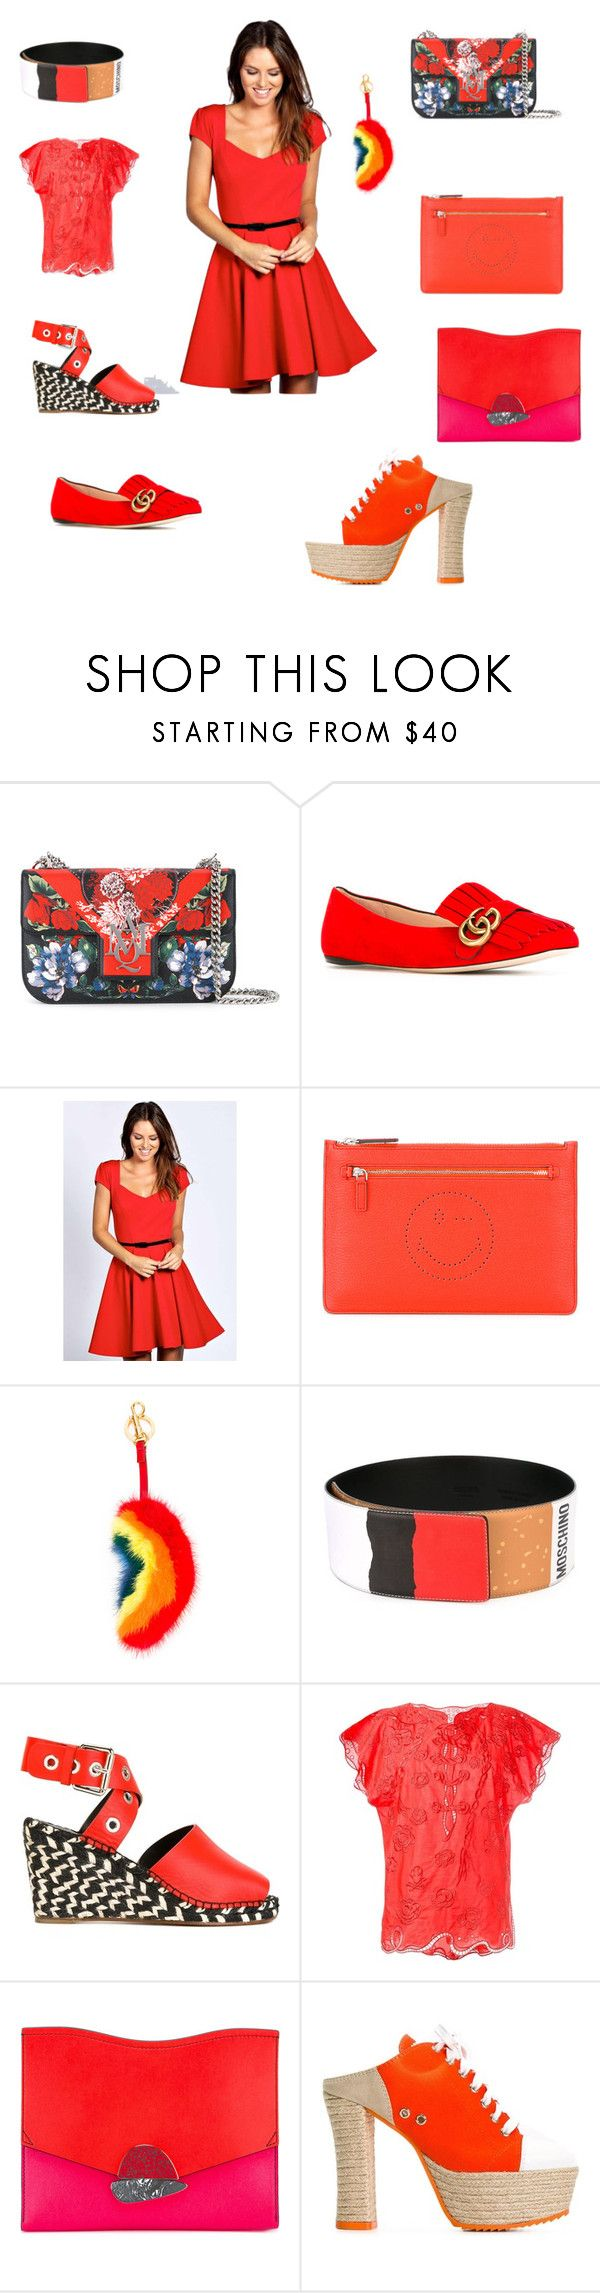 """""""Fashion rich"""" by emmamegan-5678 ❤ liked on Polyvore featuring Alexander McQueen, Gucci, Boohoo, Anya Hindmarch, Moschino, Proenza Schouler, Tsumori Chisato and vintage"""